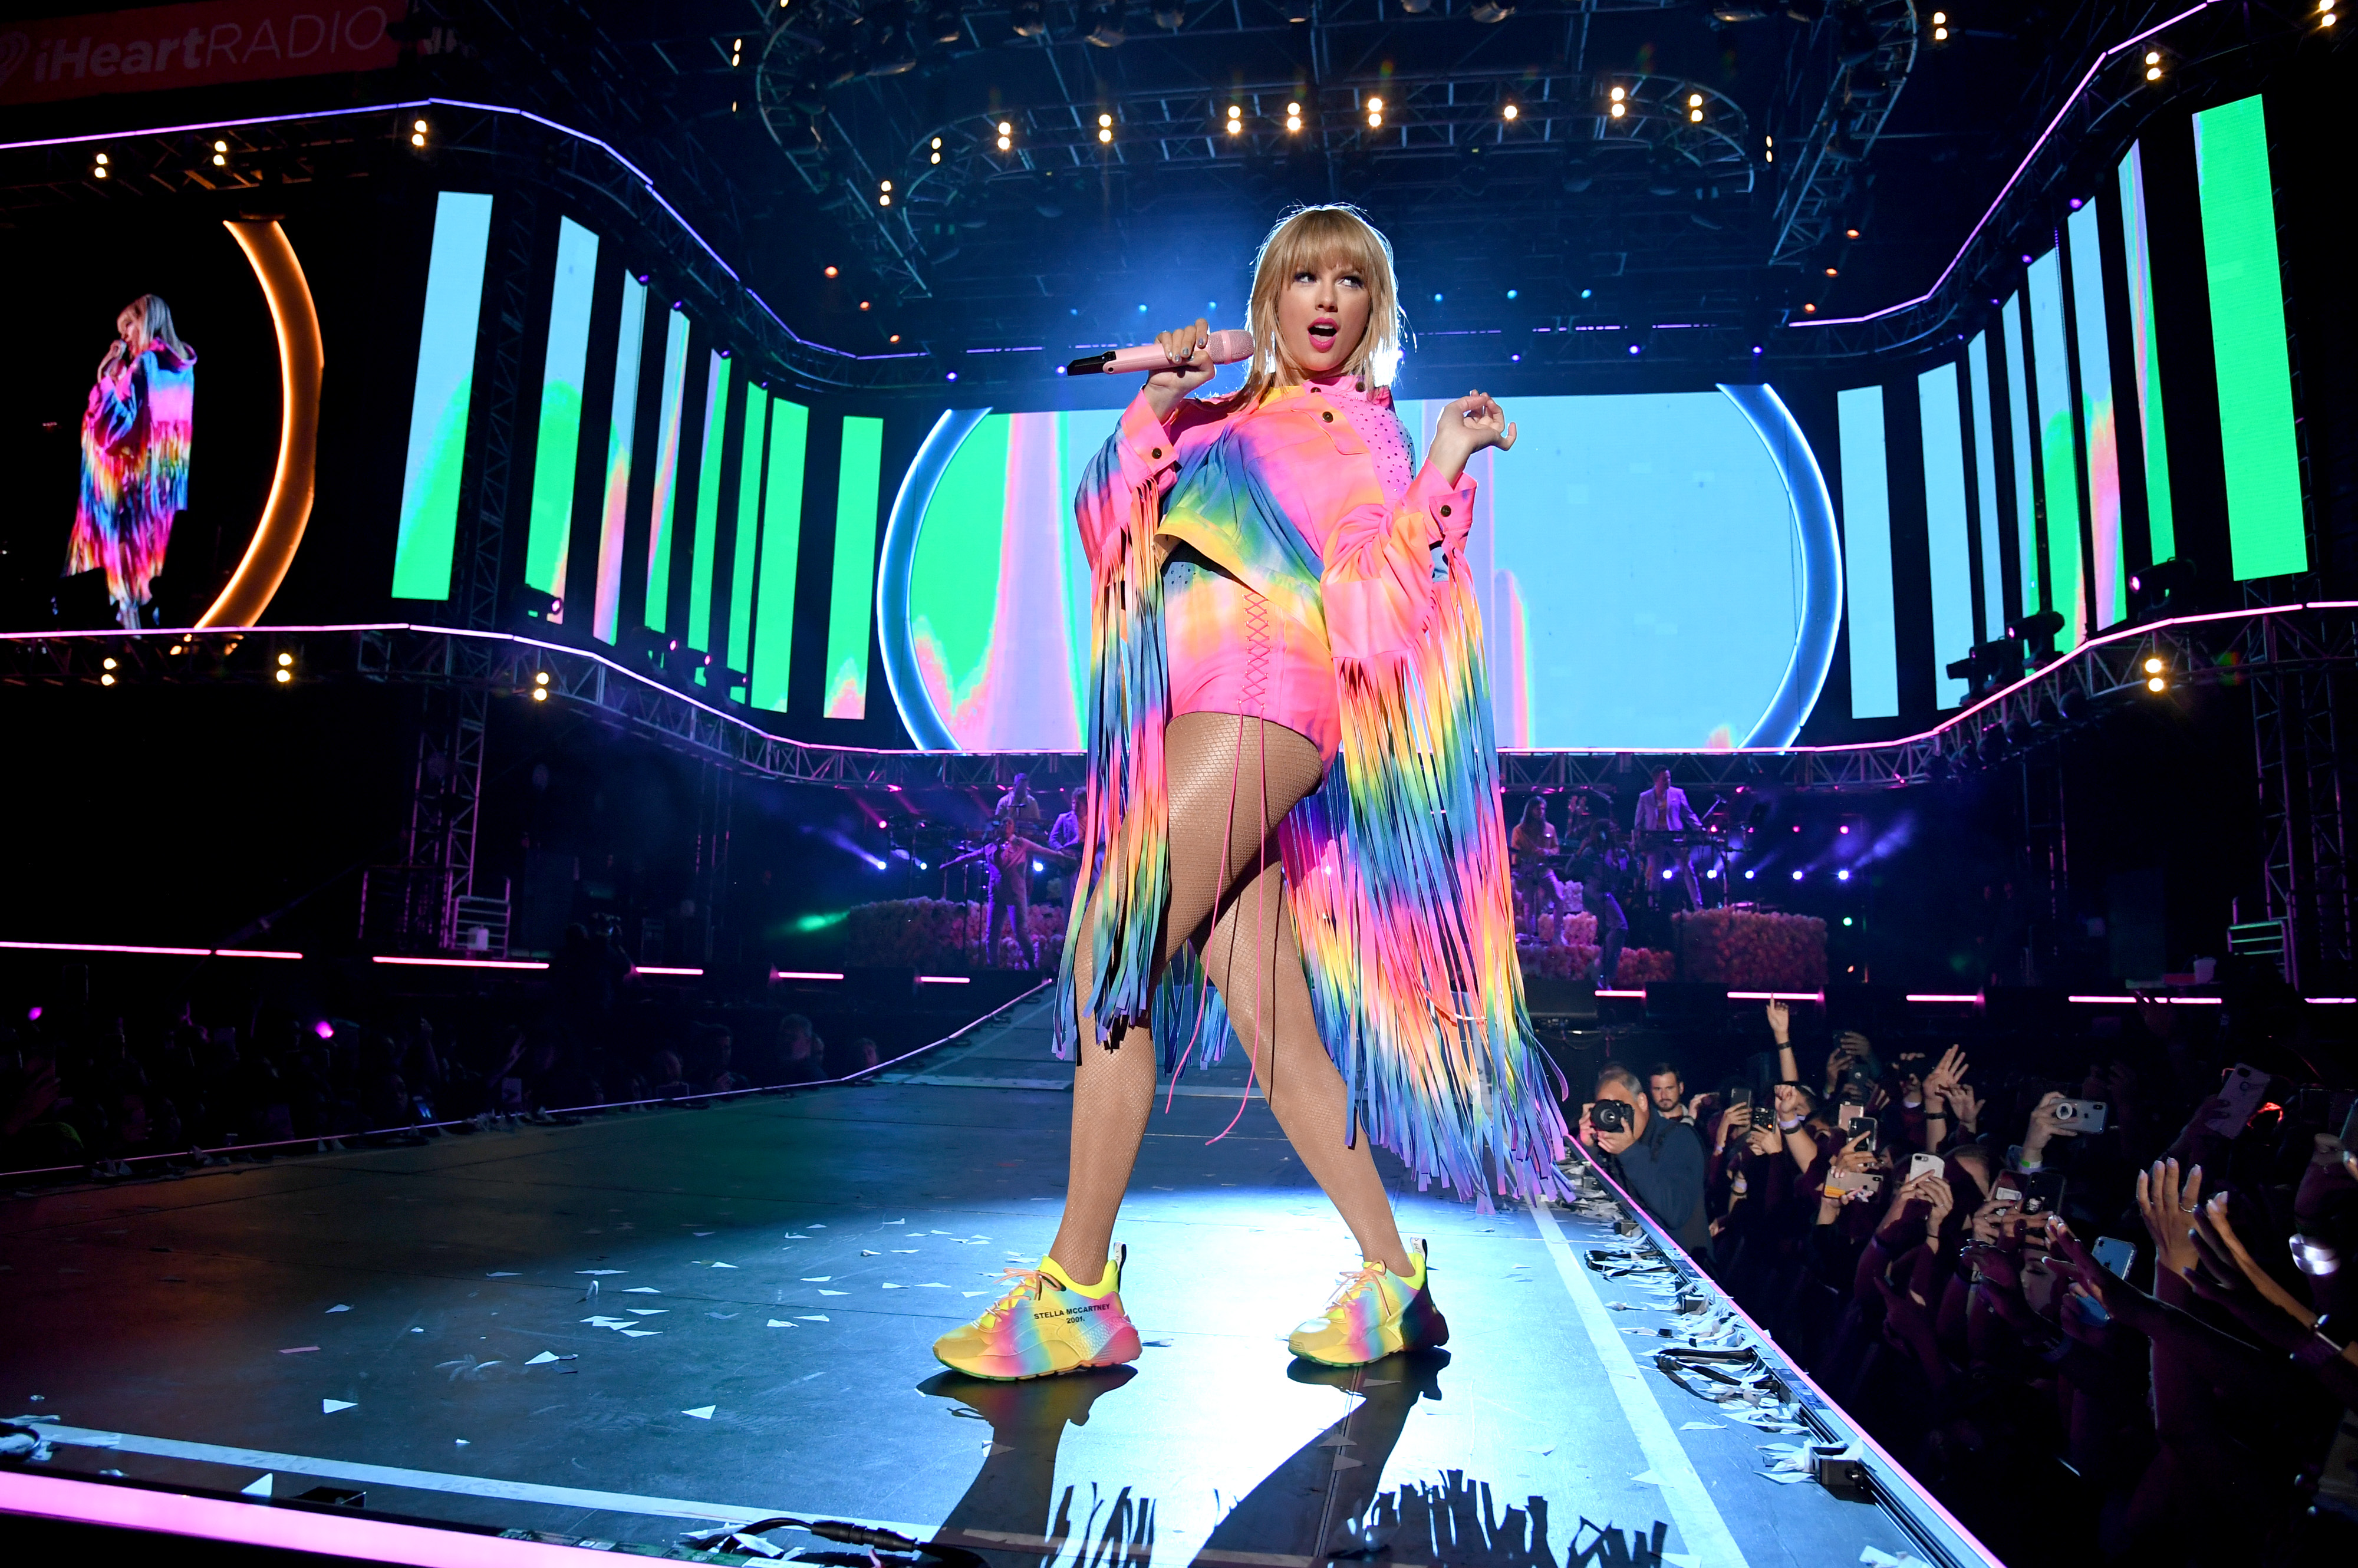 Taylor Swift performs onstage at 2019 iHeartRadio Wango Tango on June 01, 2019 in Carson, California.